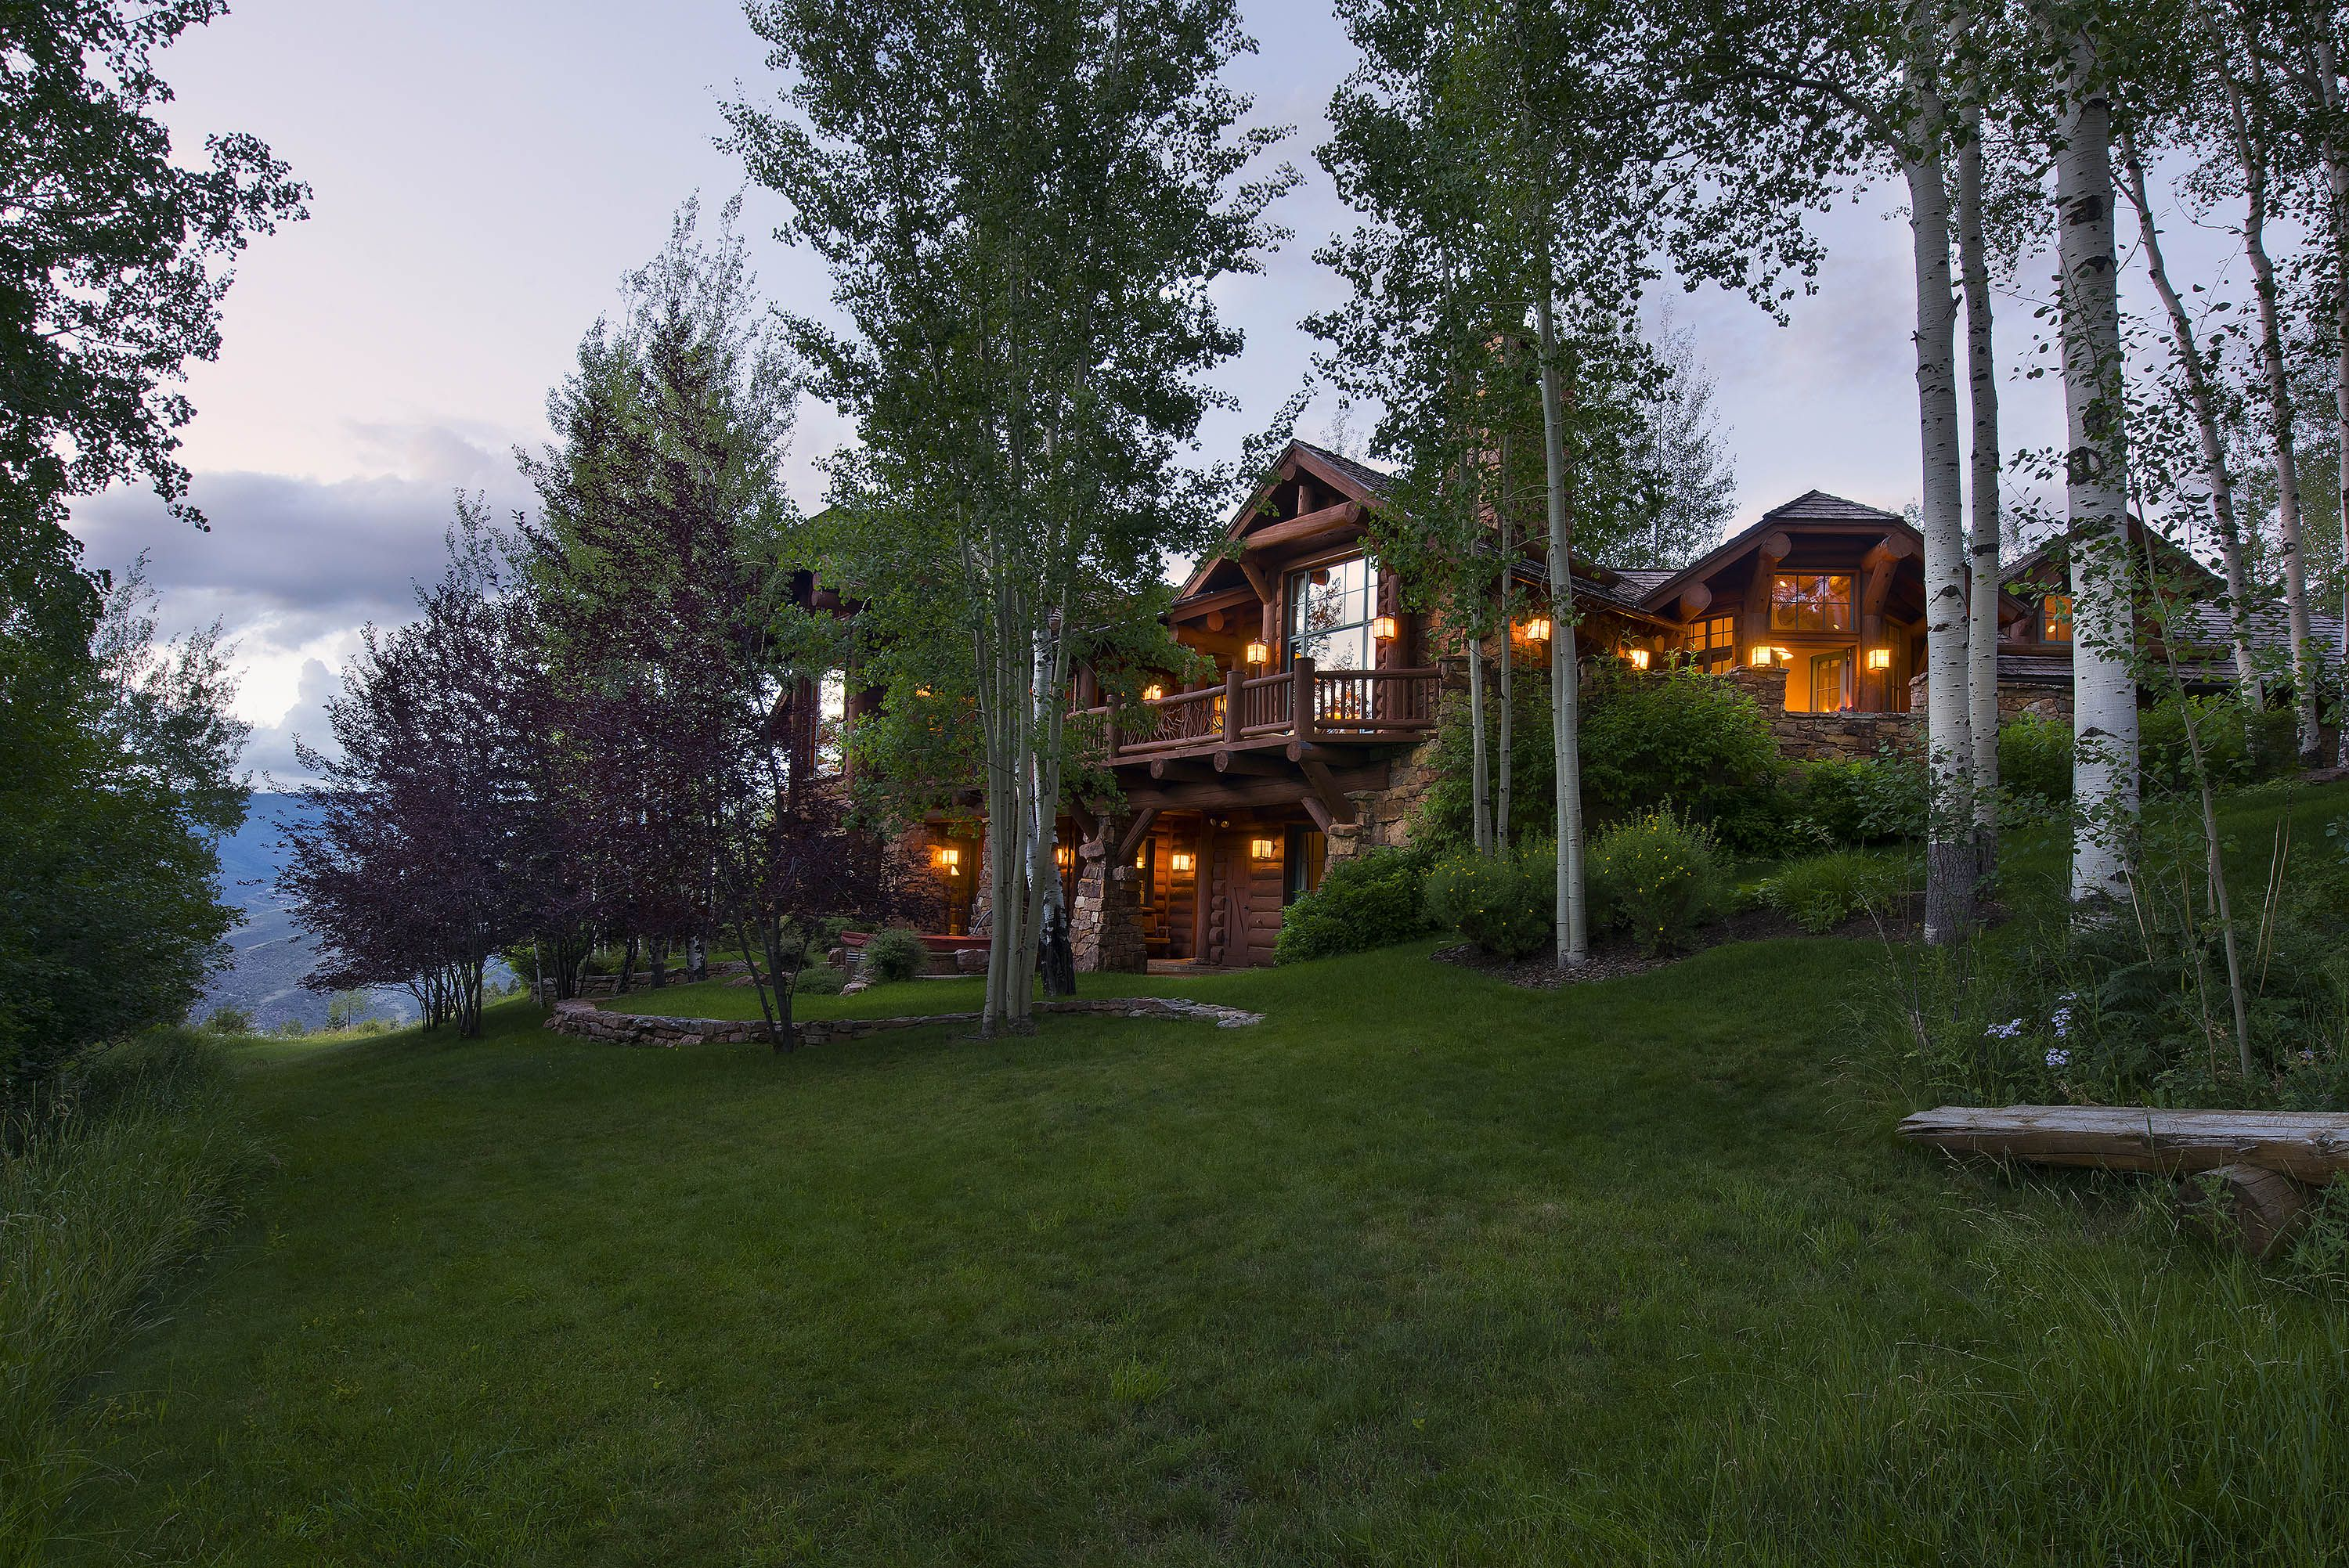 880 Daybreak Ridge Beaver Creek, CO 81620